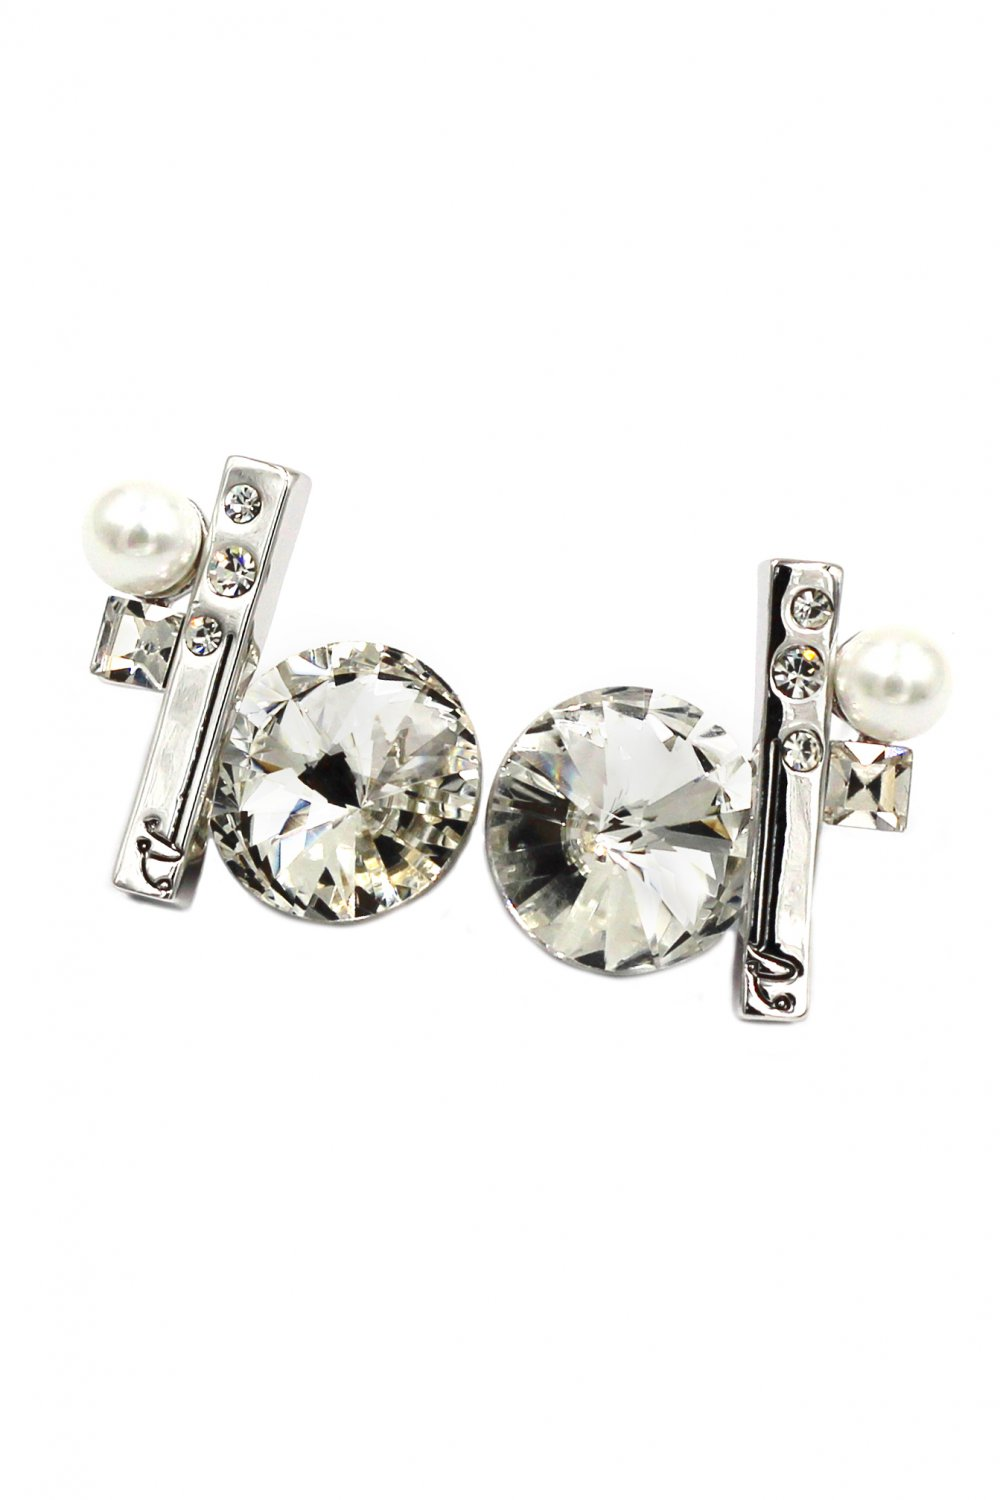 Special white crystal silver earrings